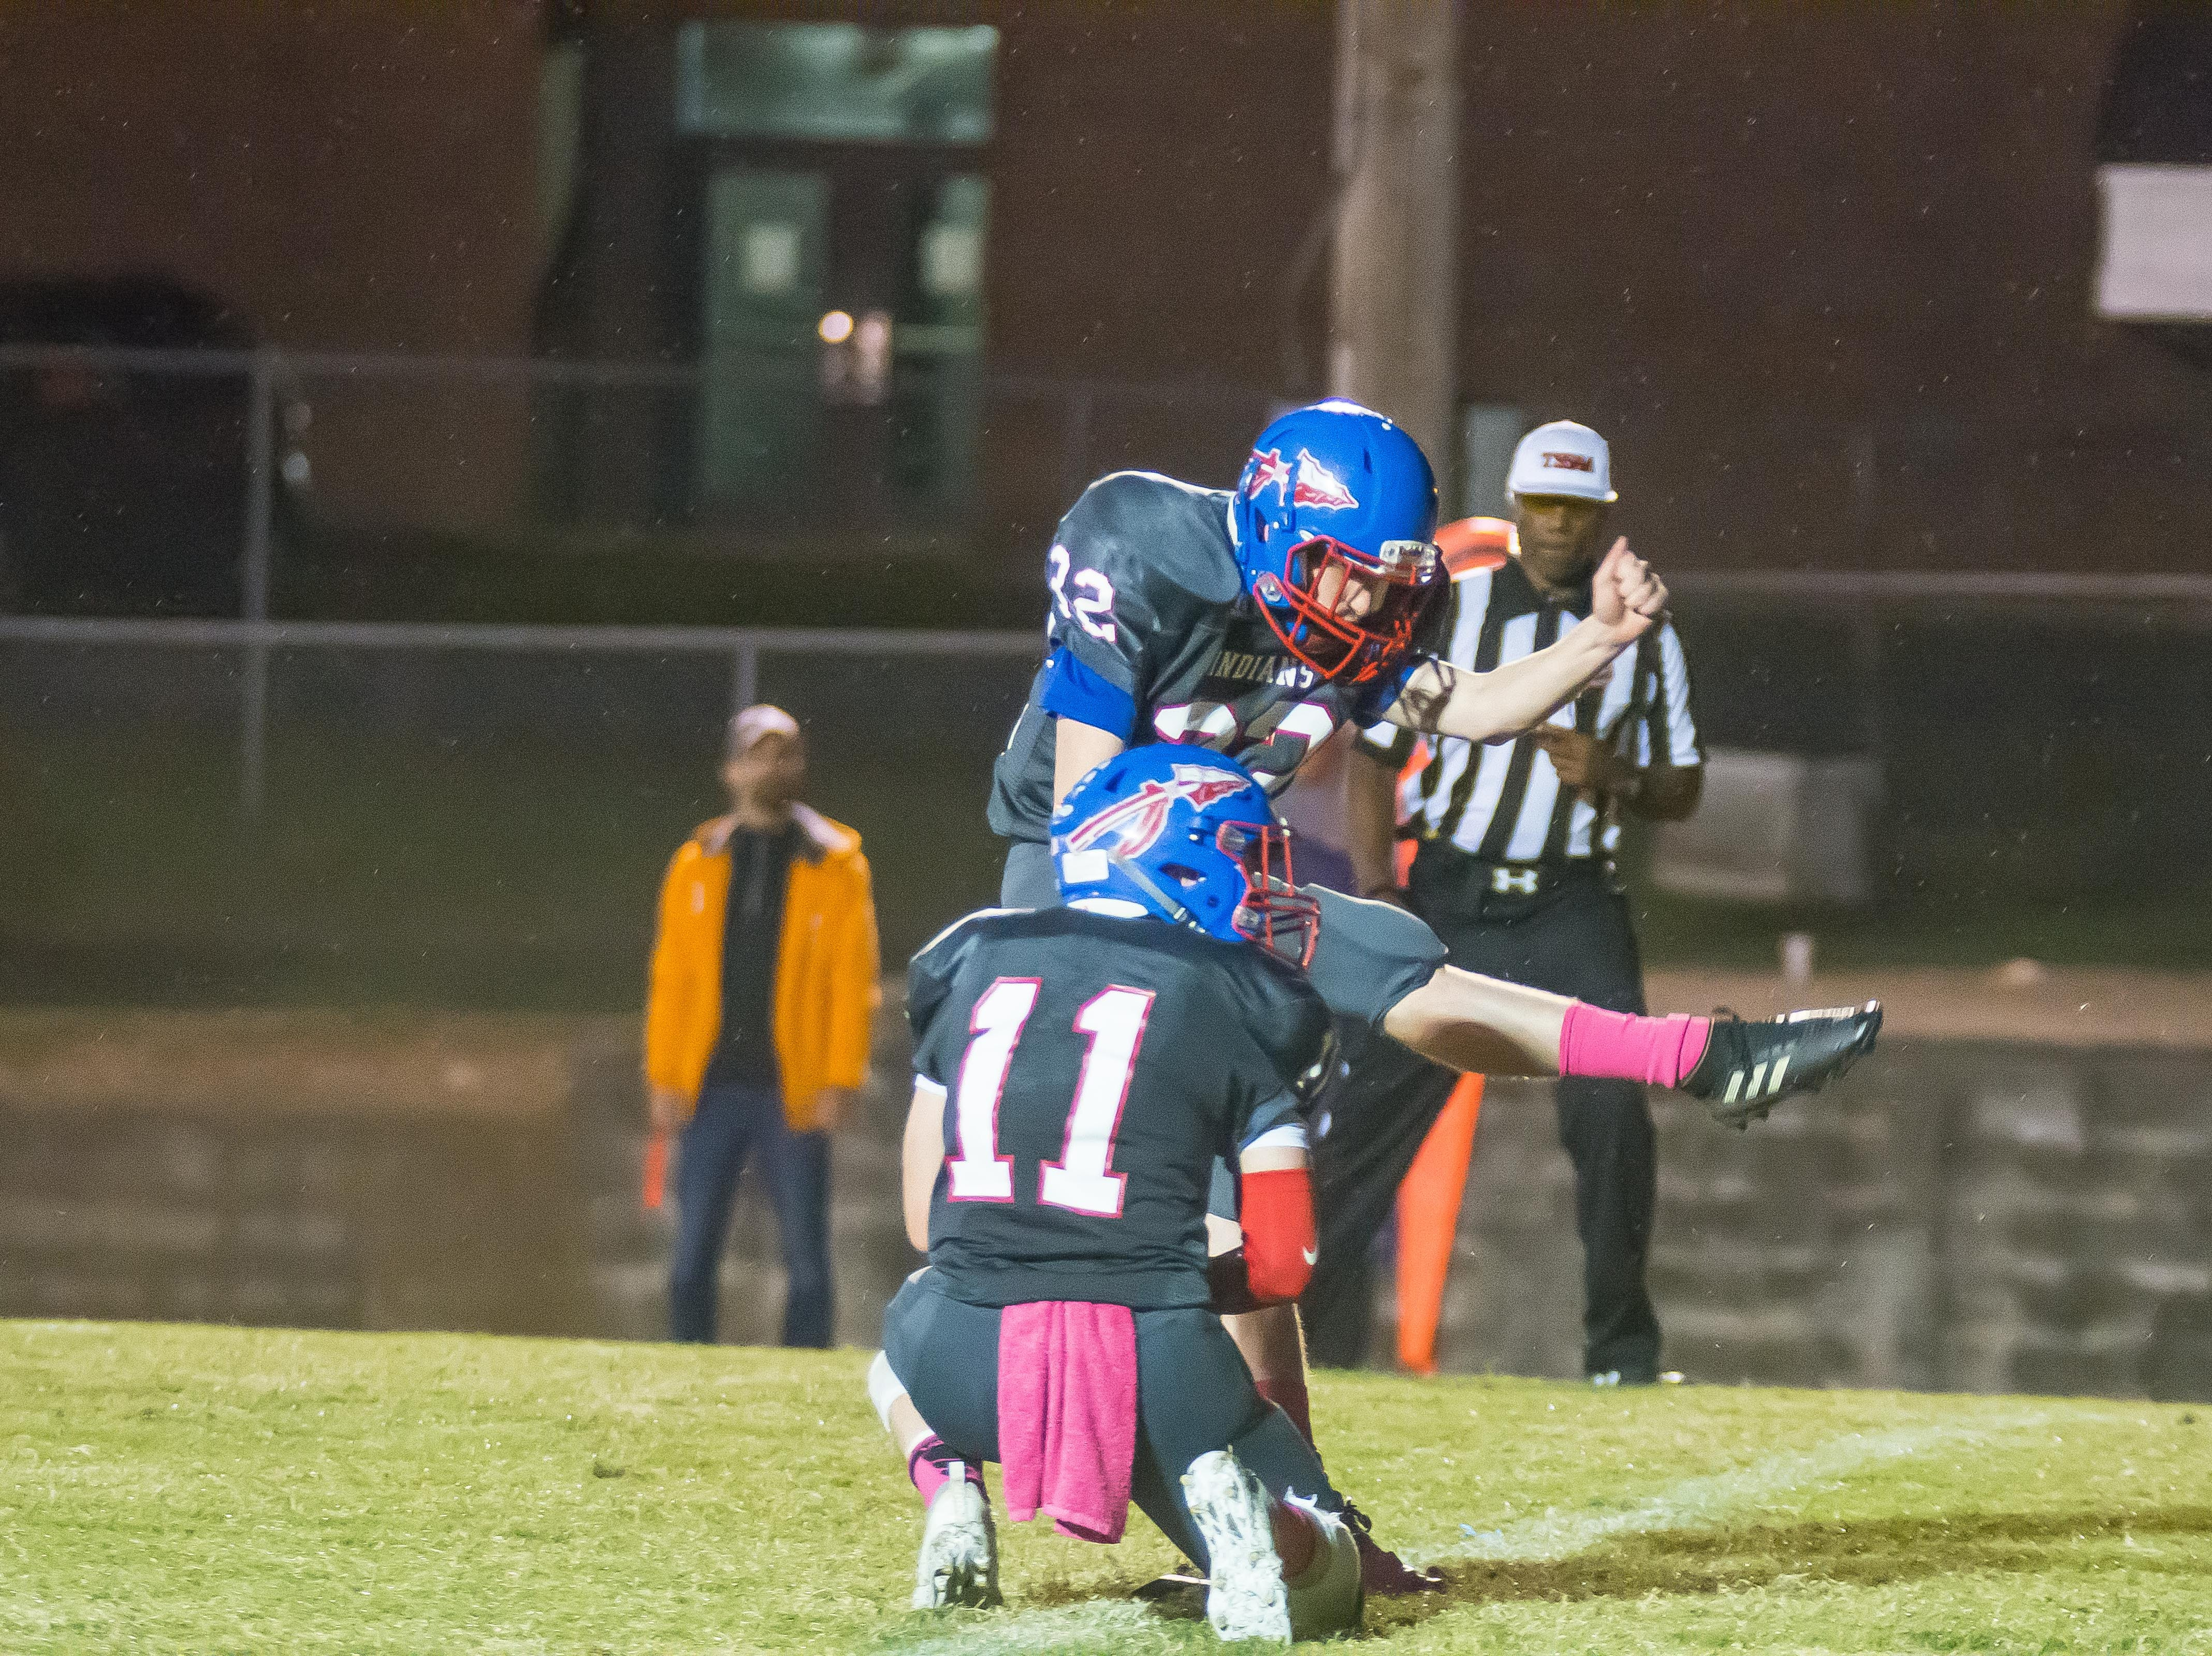 Junior Kicker was 4 0f 5 on Extra Poits tonight for the Indians!